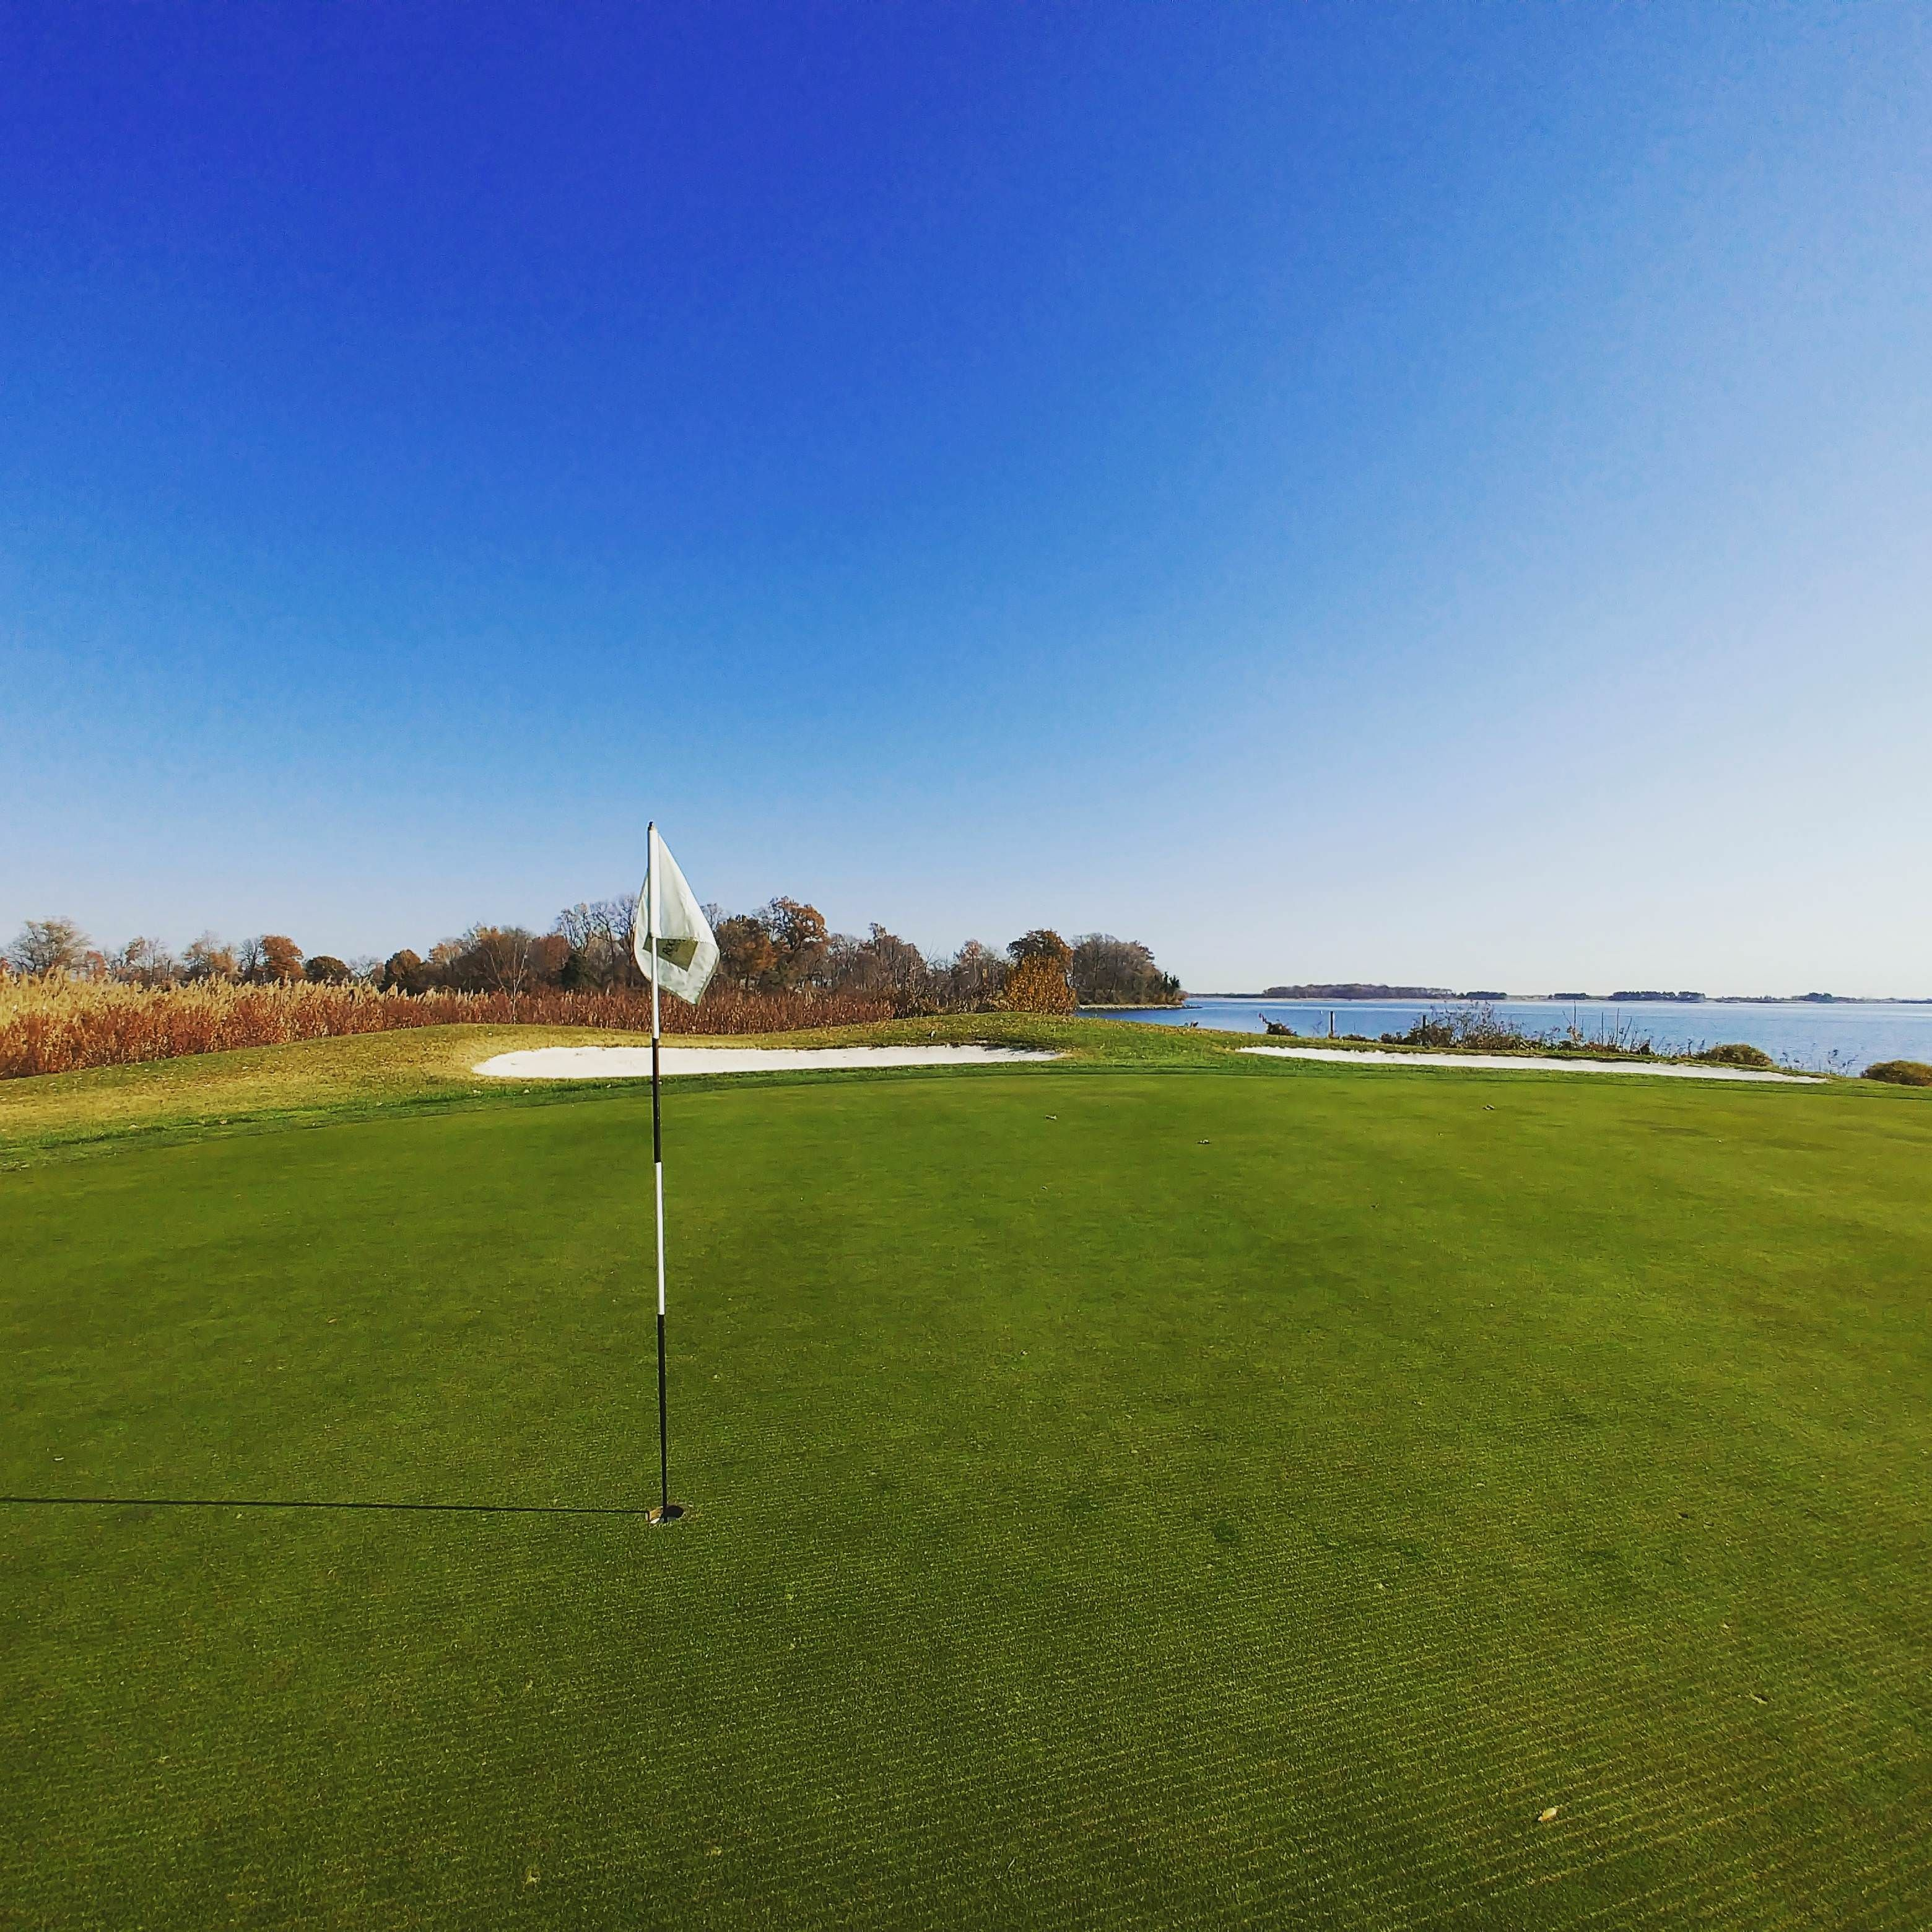 Rocky Point Golf Course In Baltimore County Md Opened 46 Years Ago And Has A Par Of 72 Golfcourseoftheday Rock Bottom Go Golf Golf Courses Discount Golf